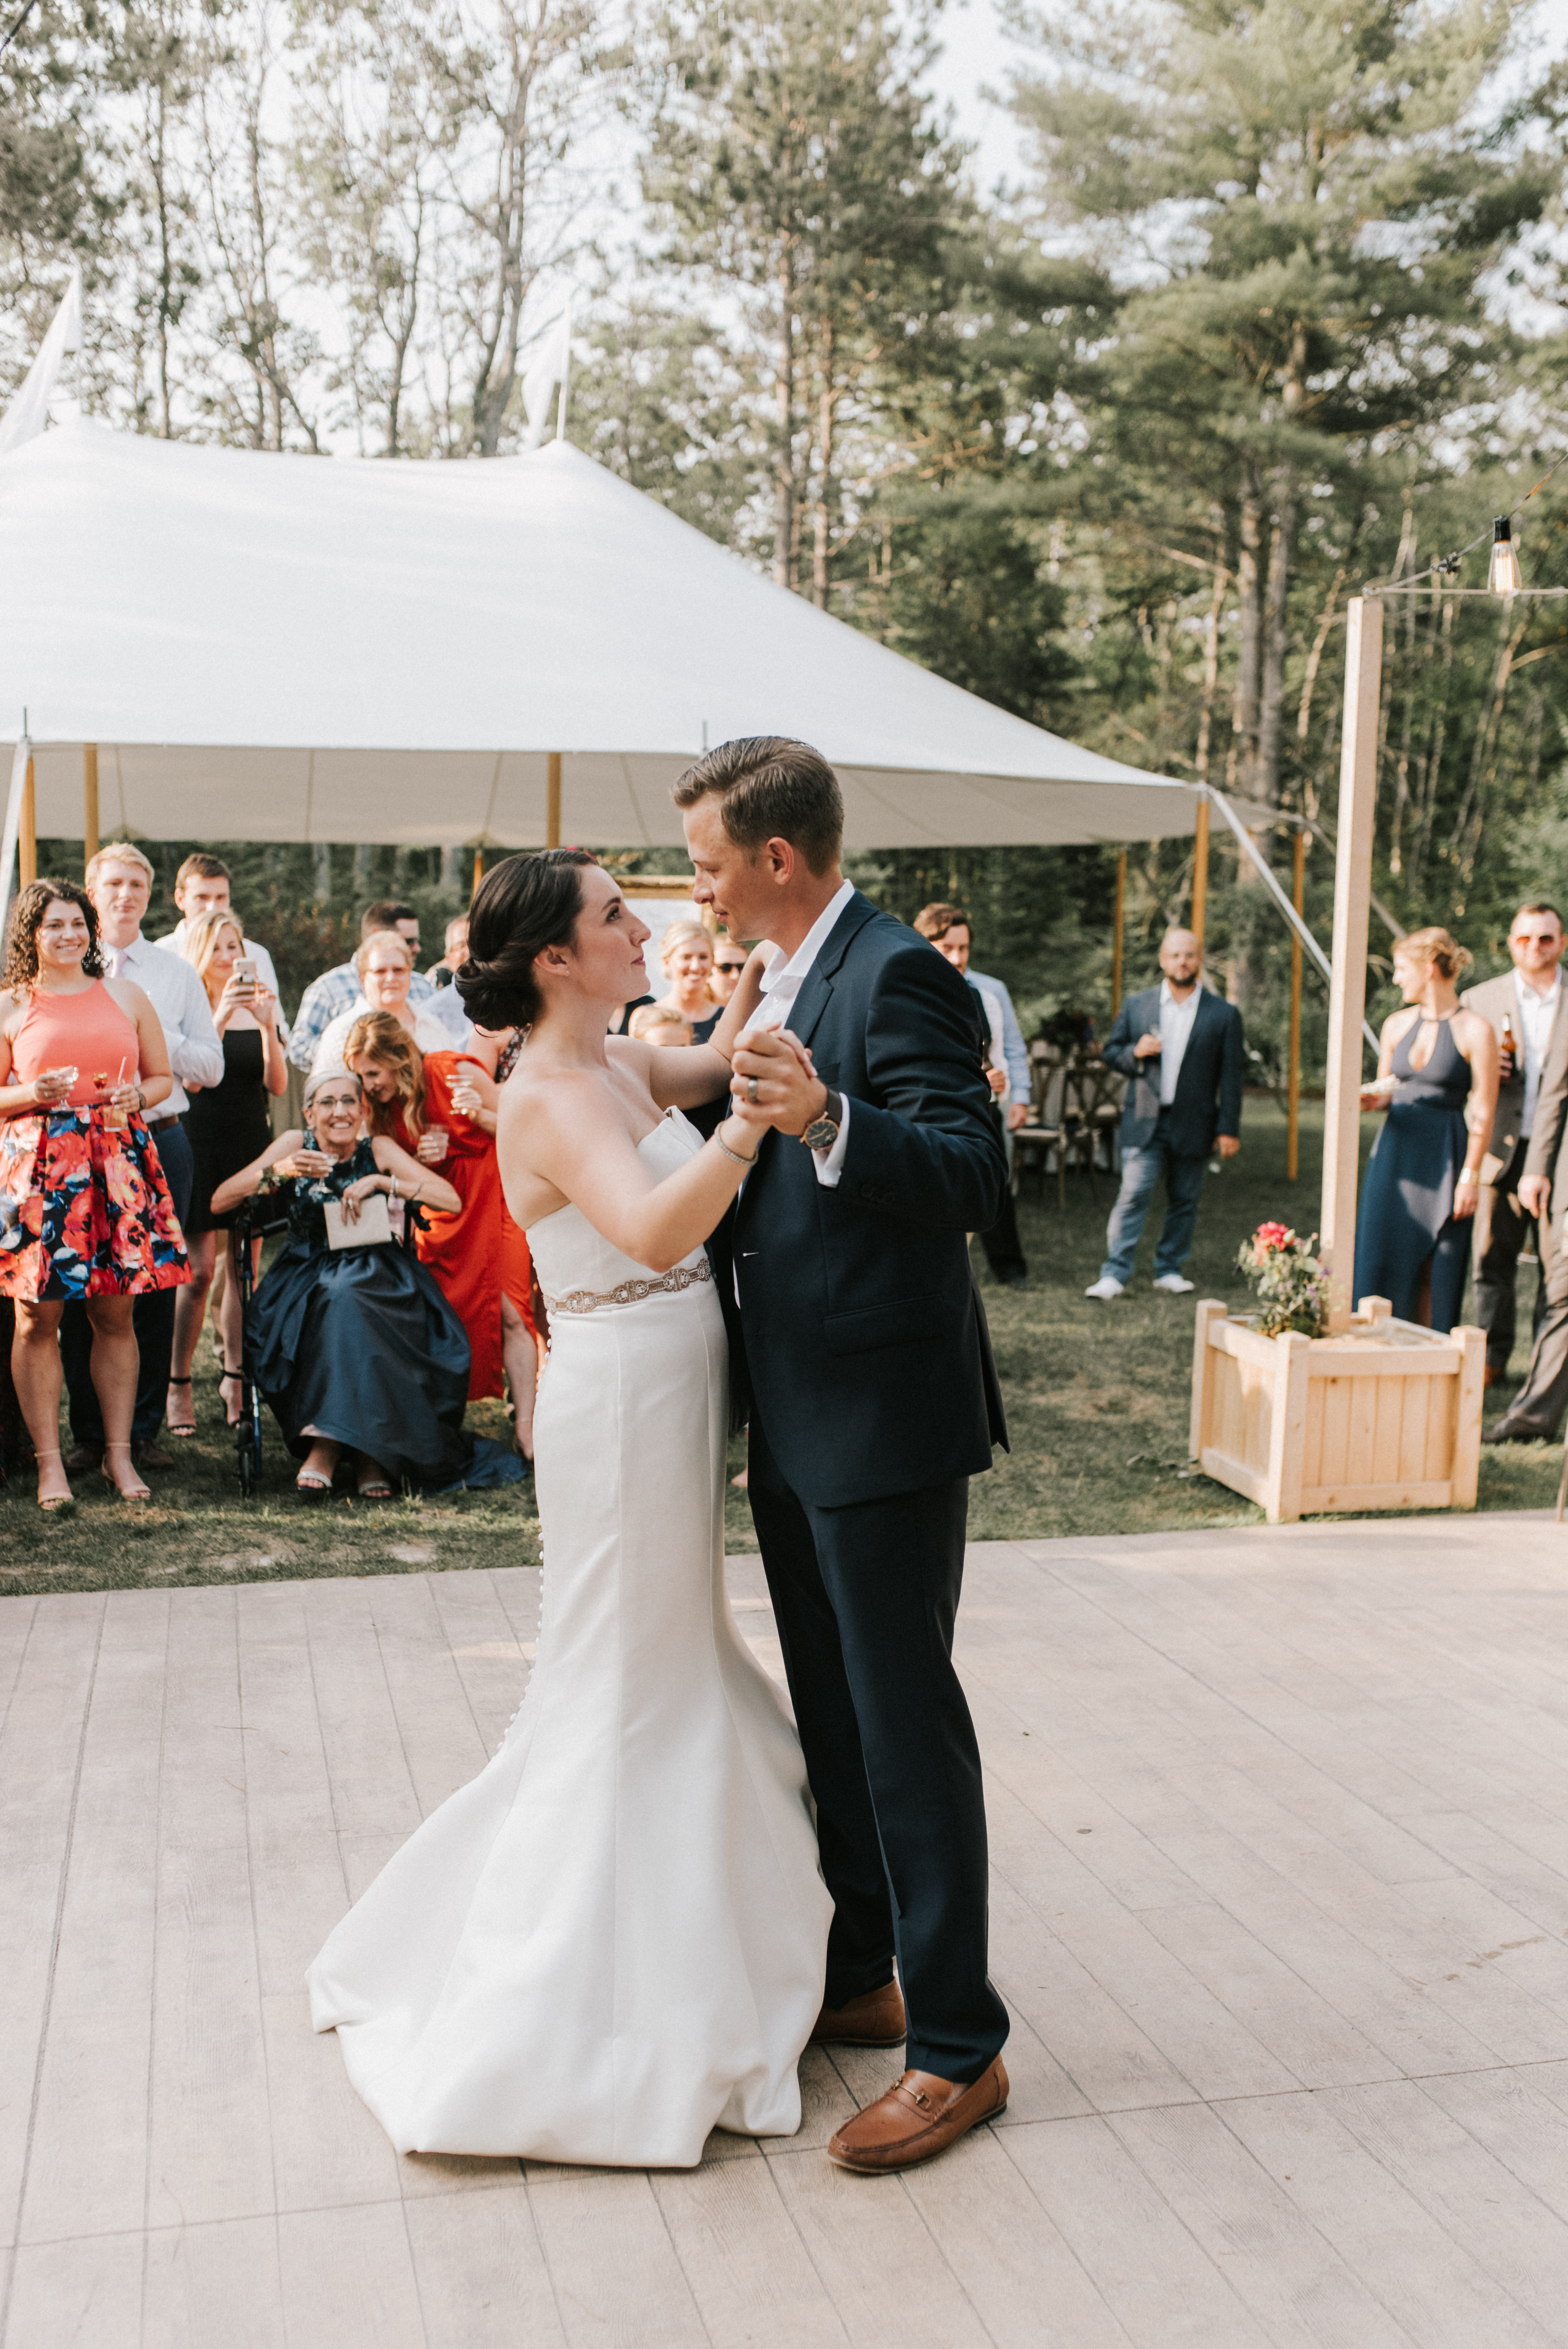 Bride and Groom first dance at Hidden Pond Wedding in Kennebunkport, Maine